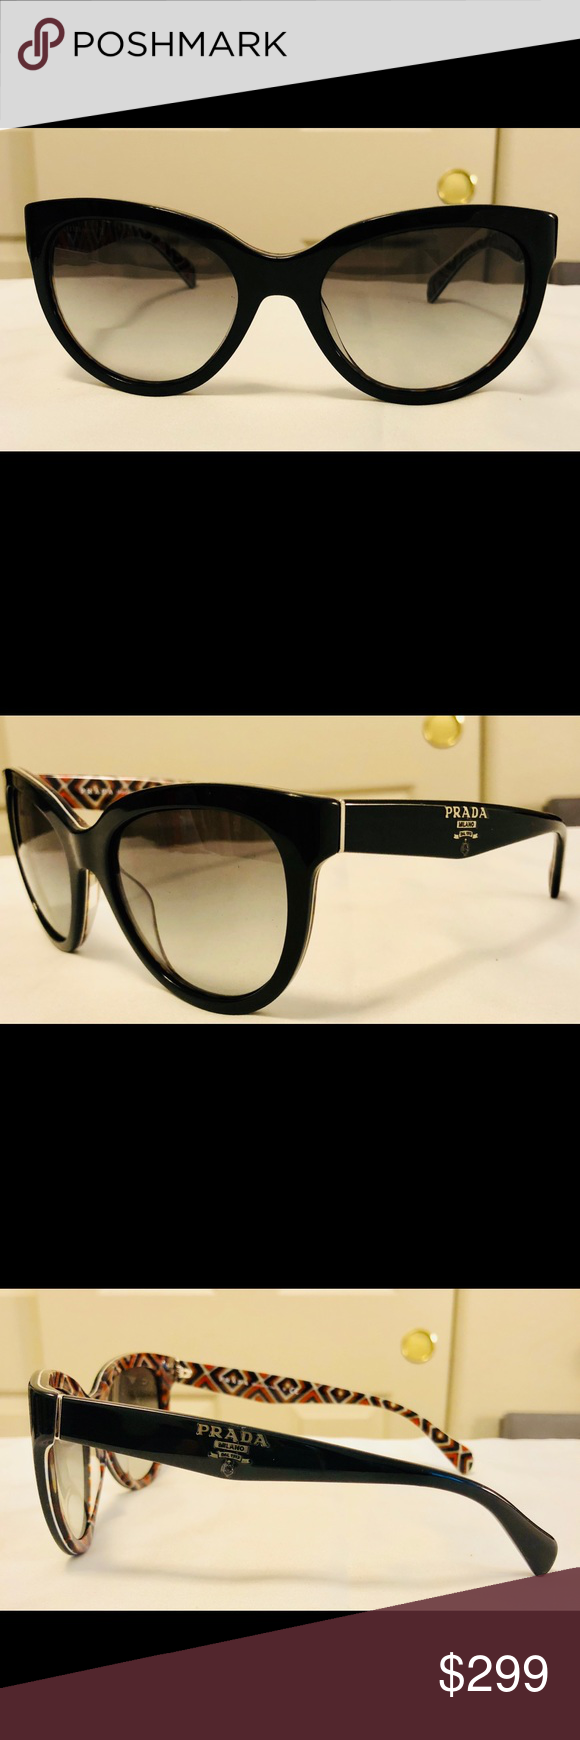 d684175377607 ... best price euc cat eye oversized prada sunglasses spr 05p coming prada  accessories sunglasses 4c526 abe6a